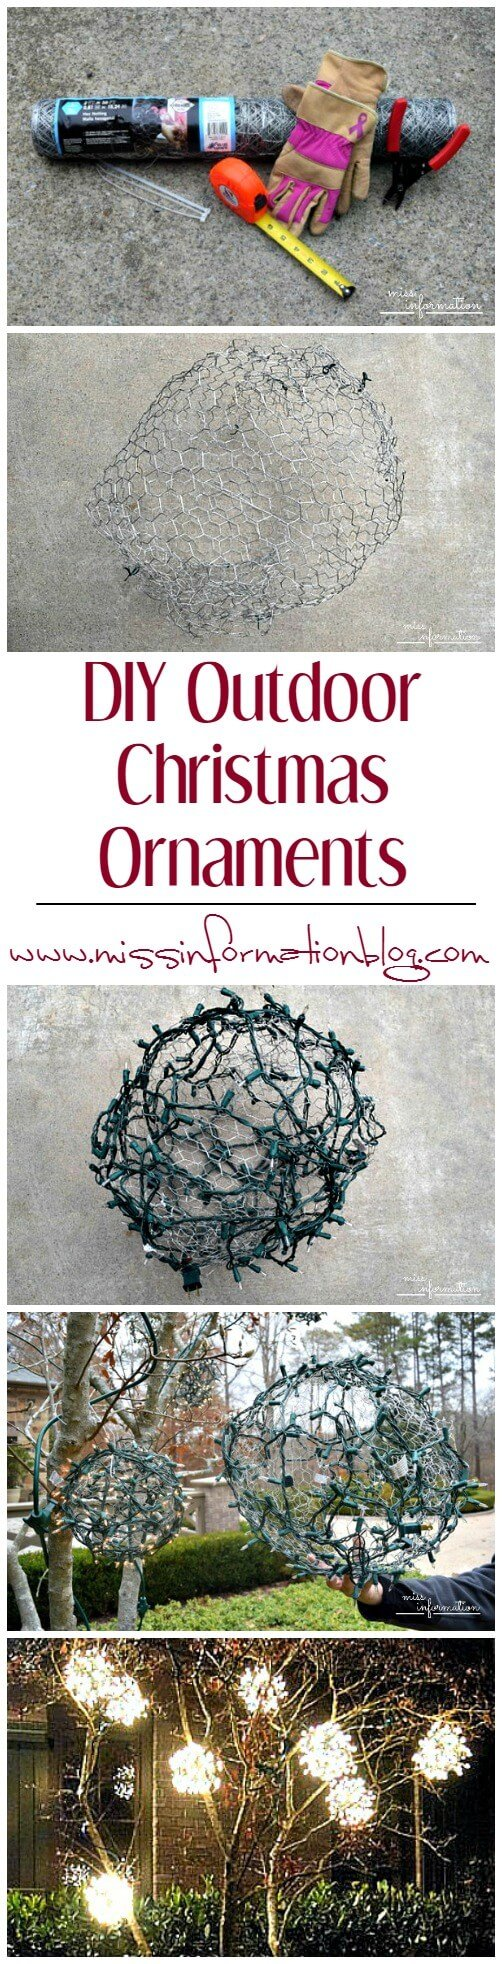 DIY Outdoor Christmas Ornaments made from chicken wire and a strand of lights. We made 9 in about 2 hours